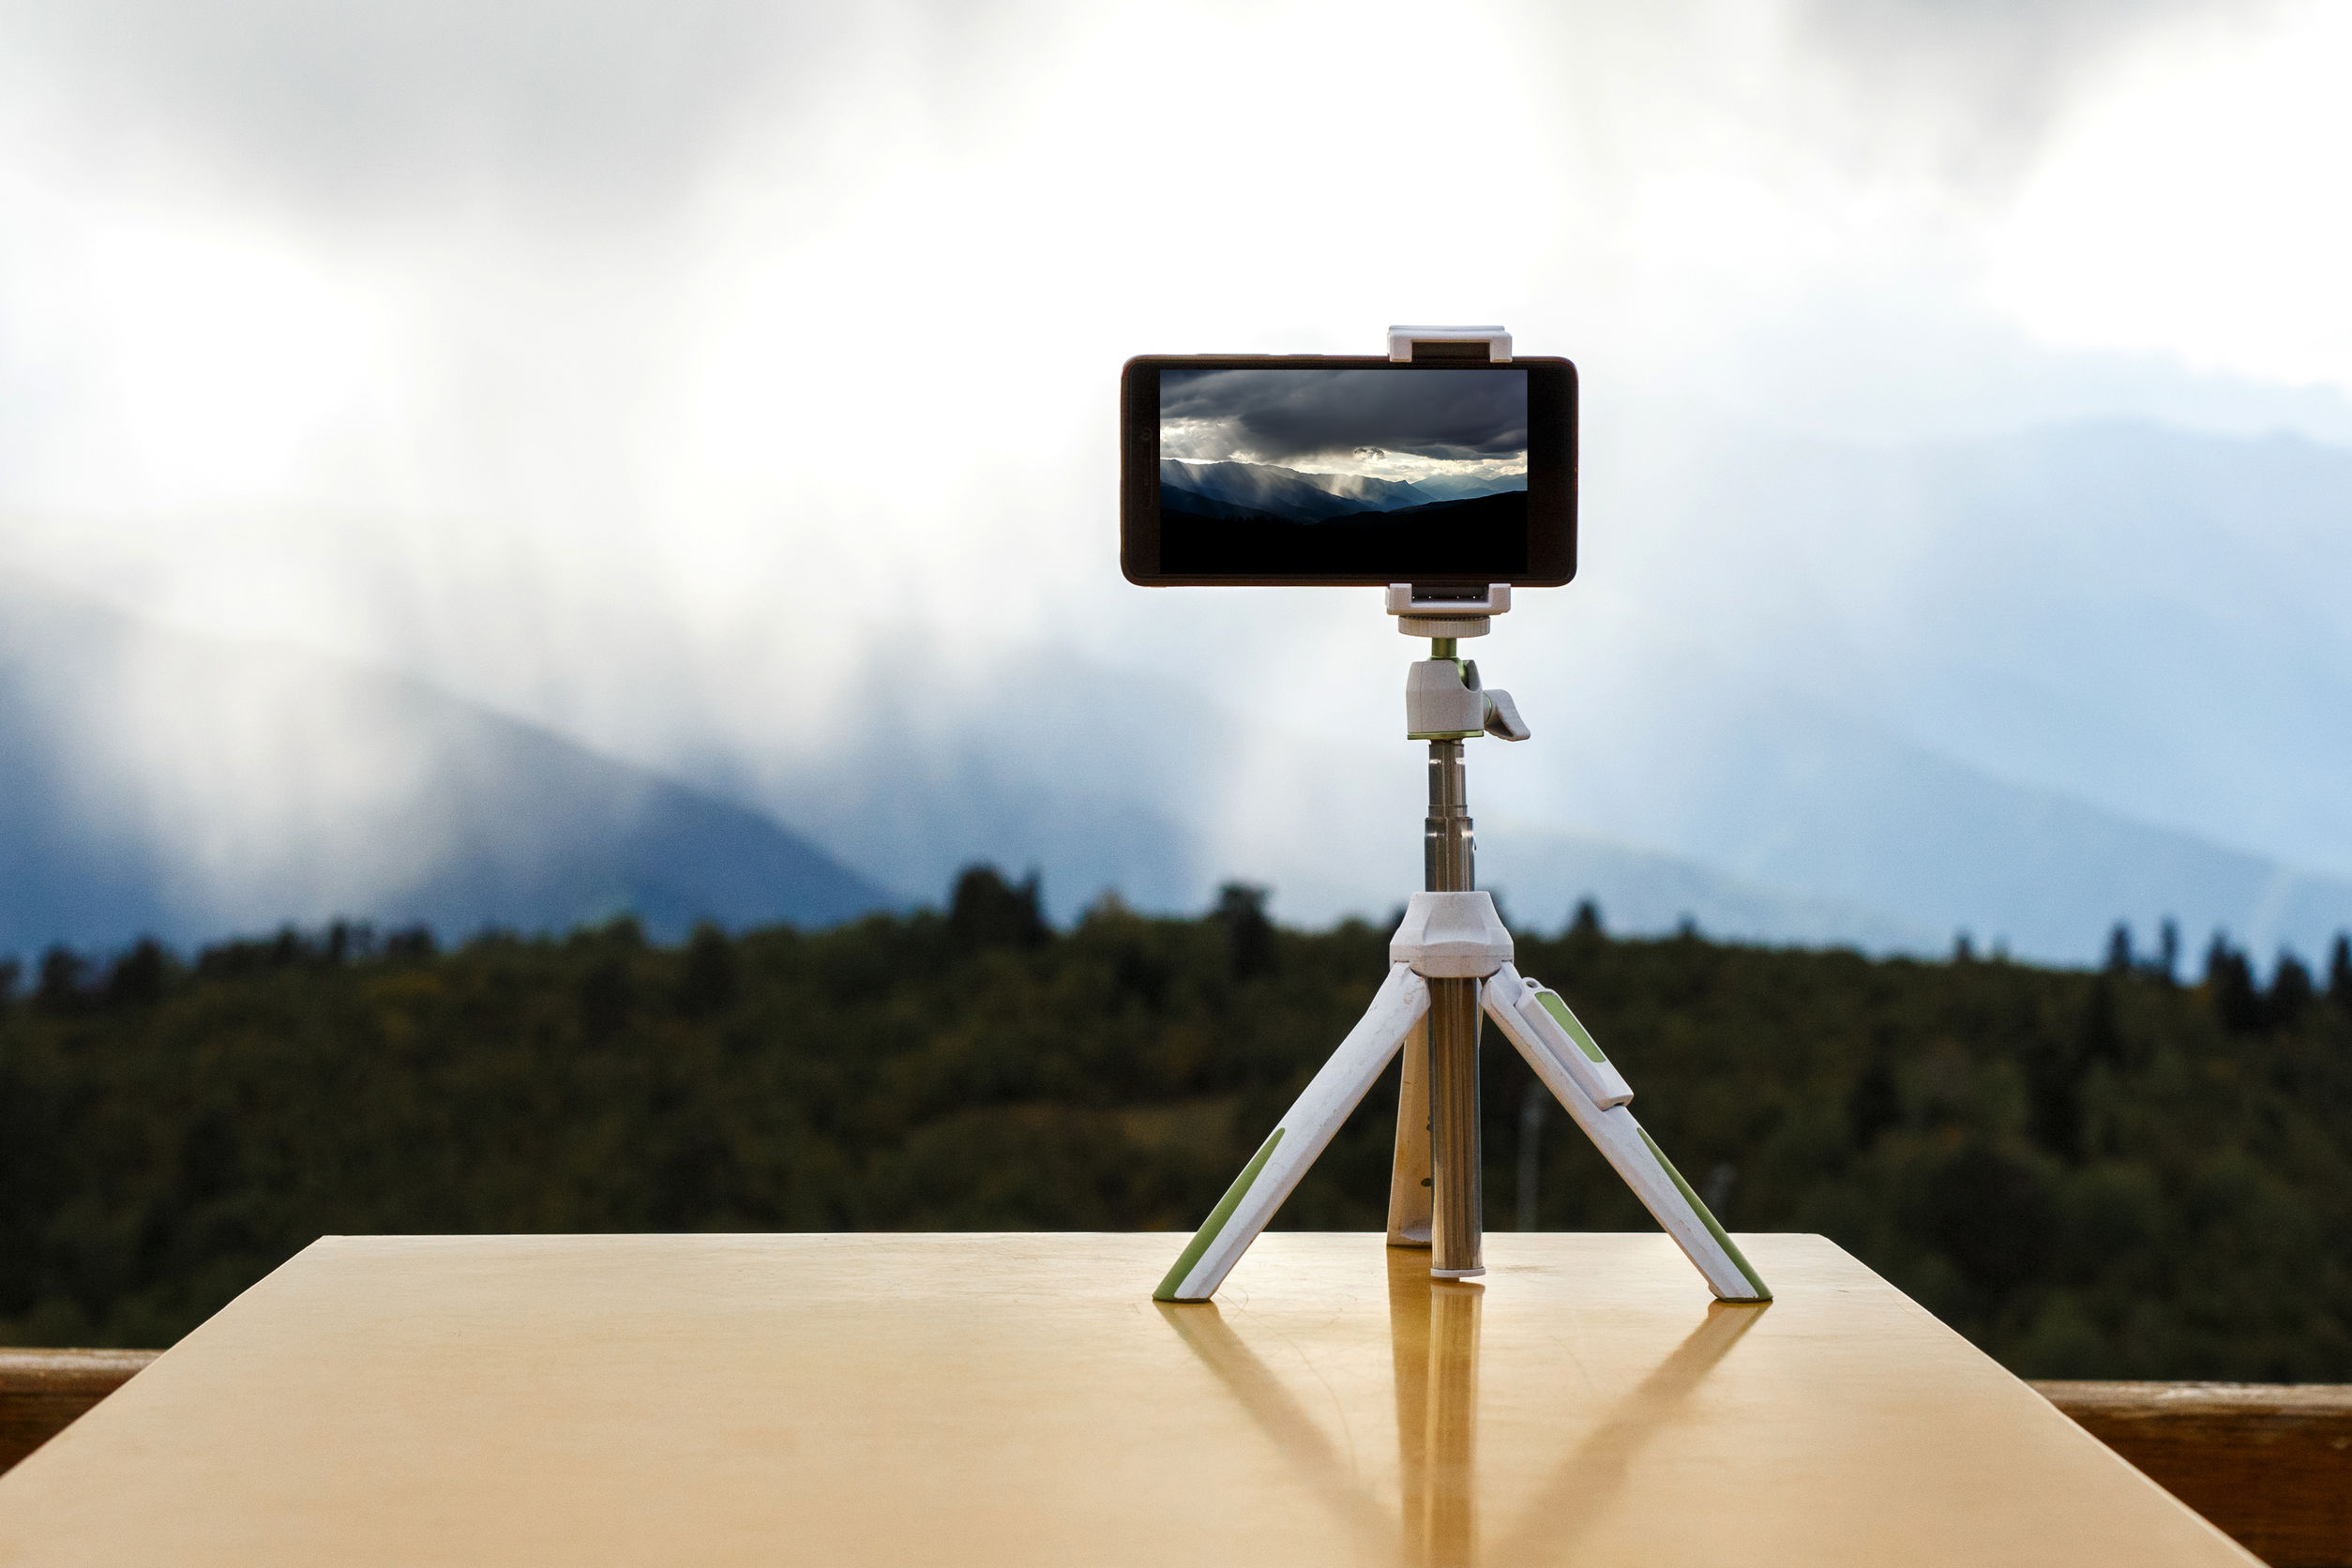 Best Phone Tripod 2020: Shopping Guide & Review